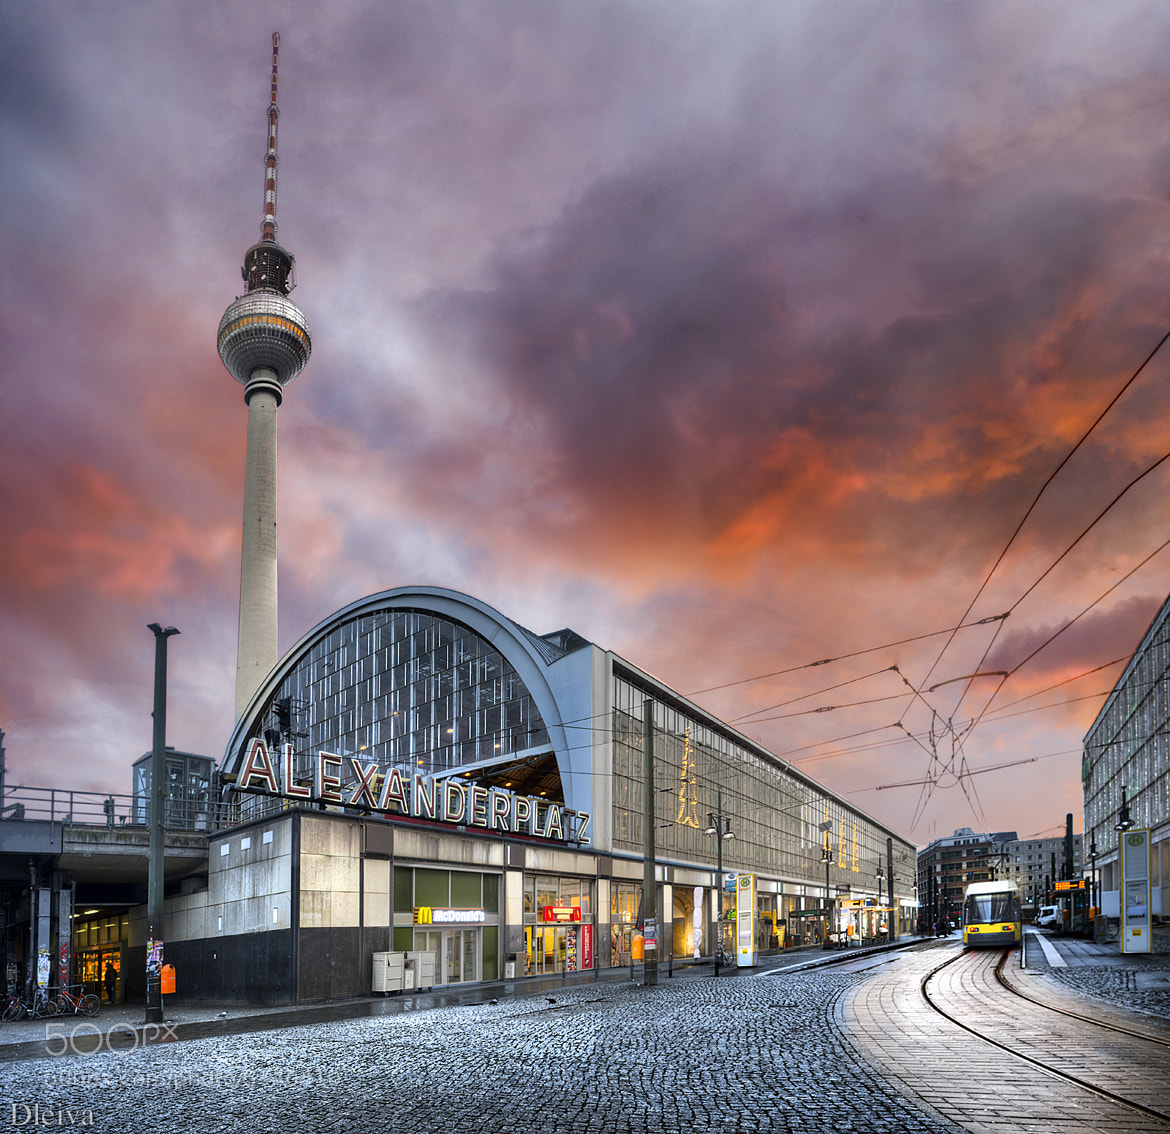 Photograph Alexanderplatz (Berlin) by Domingo Leiva on 500px